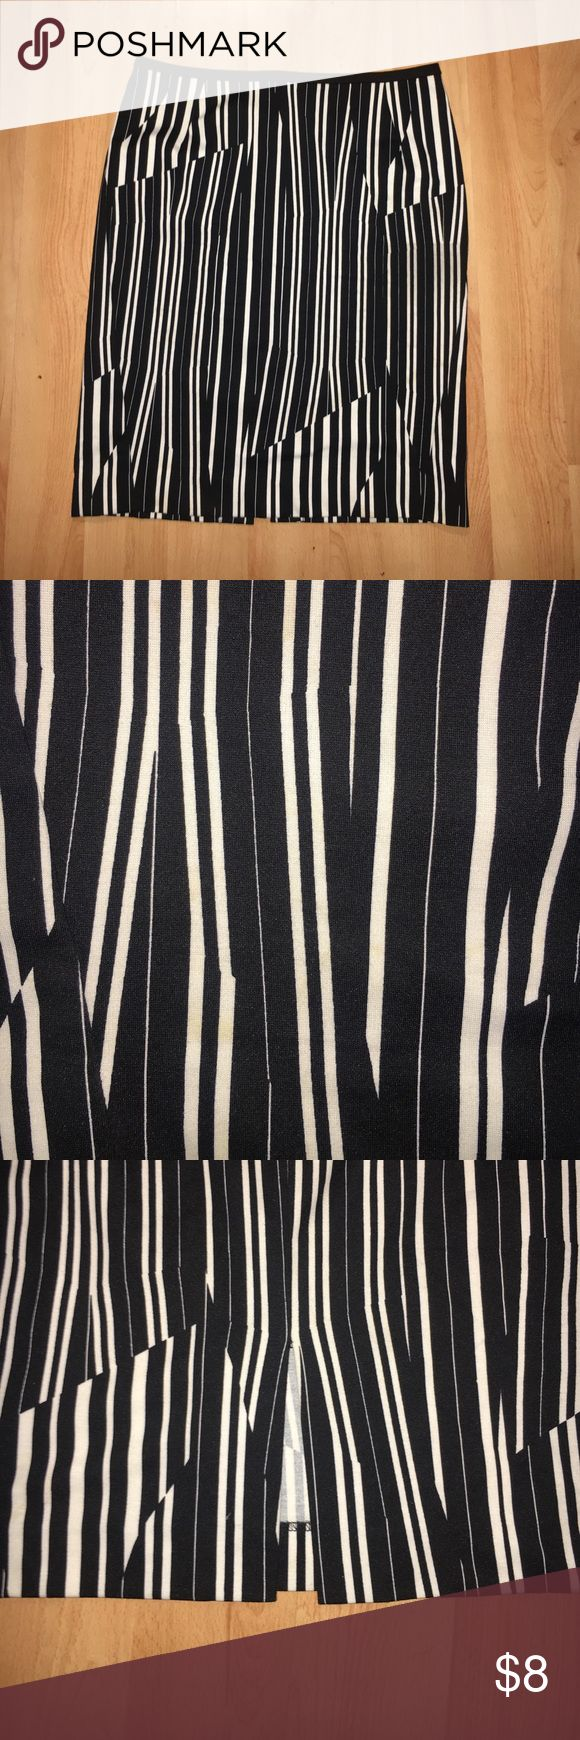 "H&M Striped Pencil Skirt Black and white striped pencil skirt. Zipper and clasp closure at the back of skirt. Length of skirt is about 21"" and the waist is about 31.5"". Worn once and in great condition. H&M Skirts Pencil"